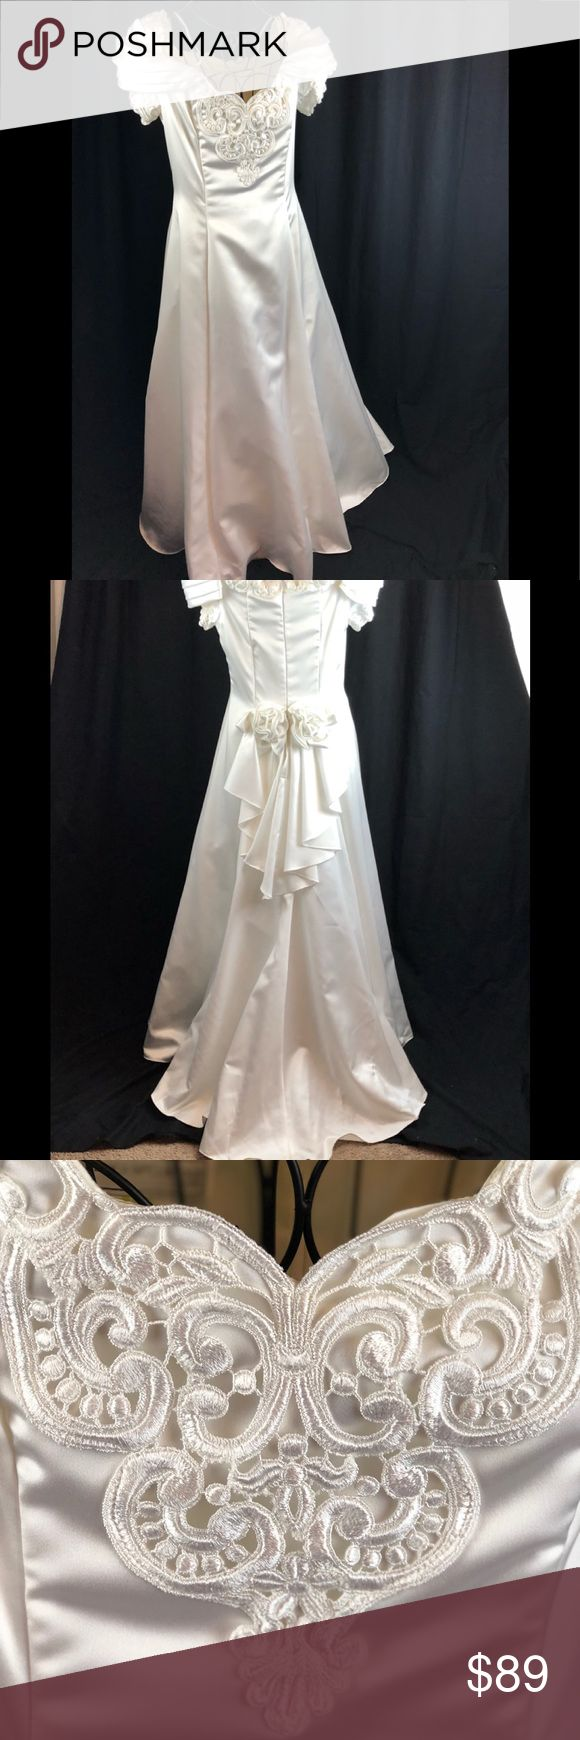 Best 25 jessica mcclintock ideas on pinterest gunne sax vintage jessica mcclintock wedding dress sz 12 ombrellifo Images